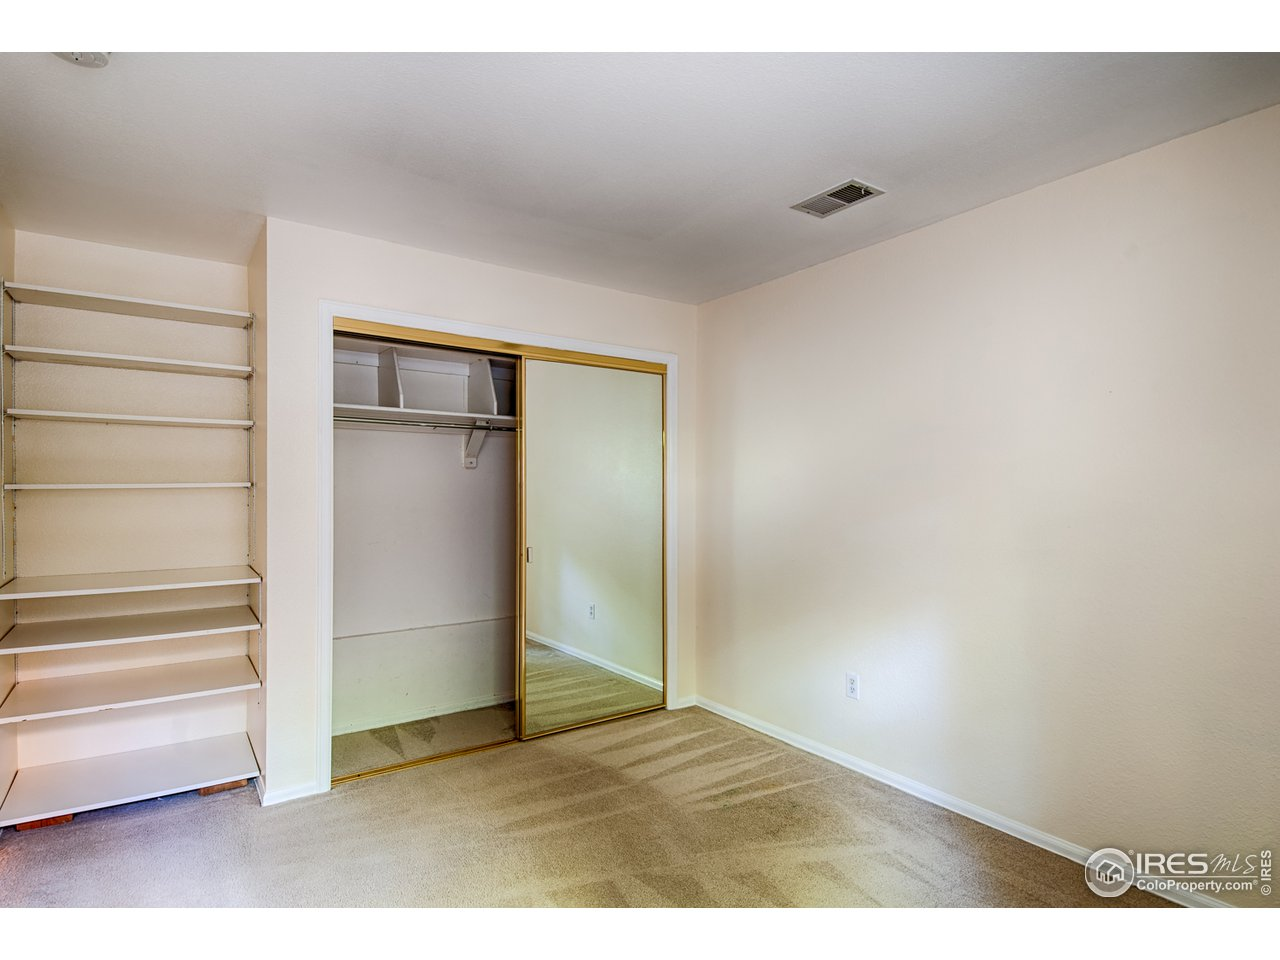 2nd Bedroom Closet & Shelving